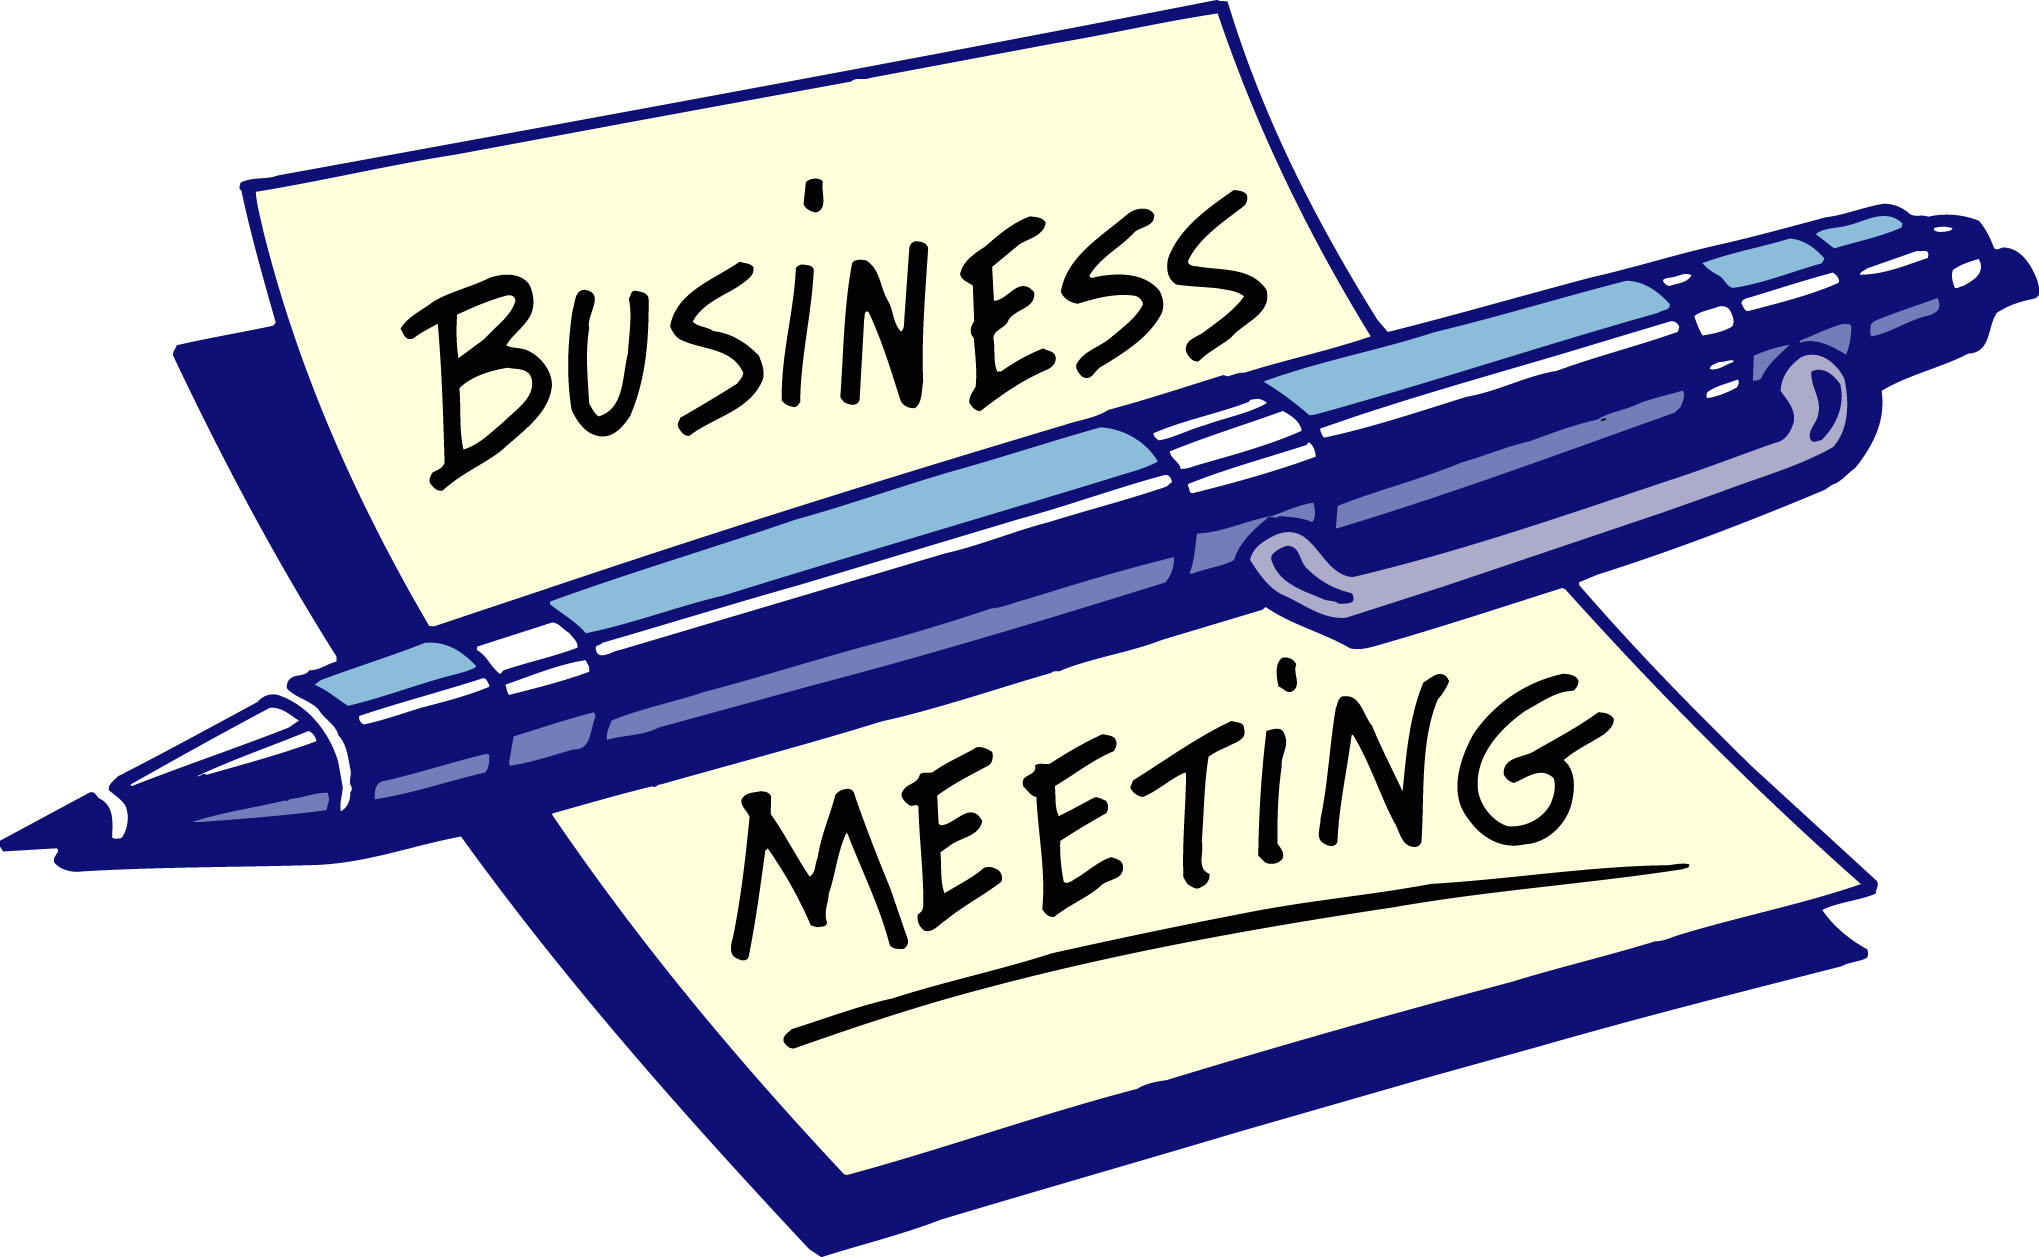 Business meeting clipart 4